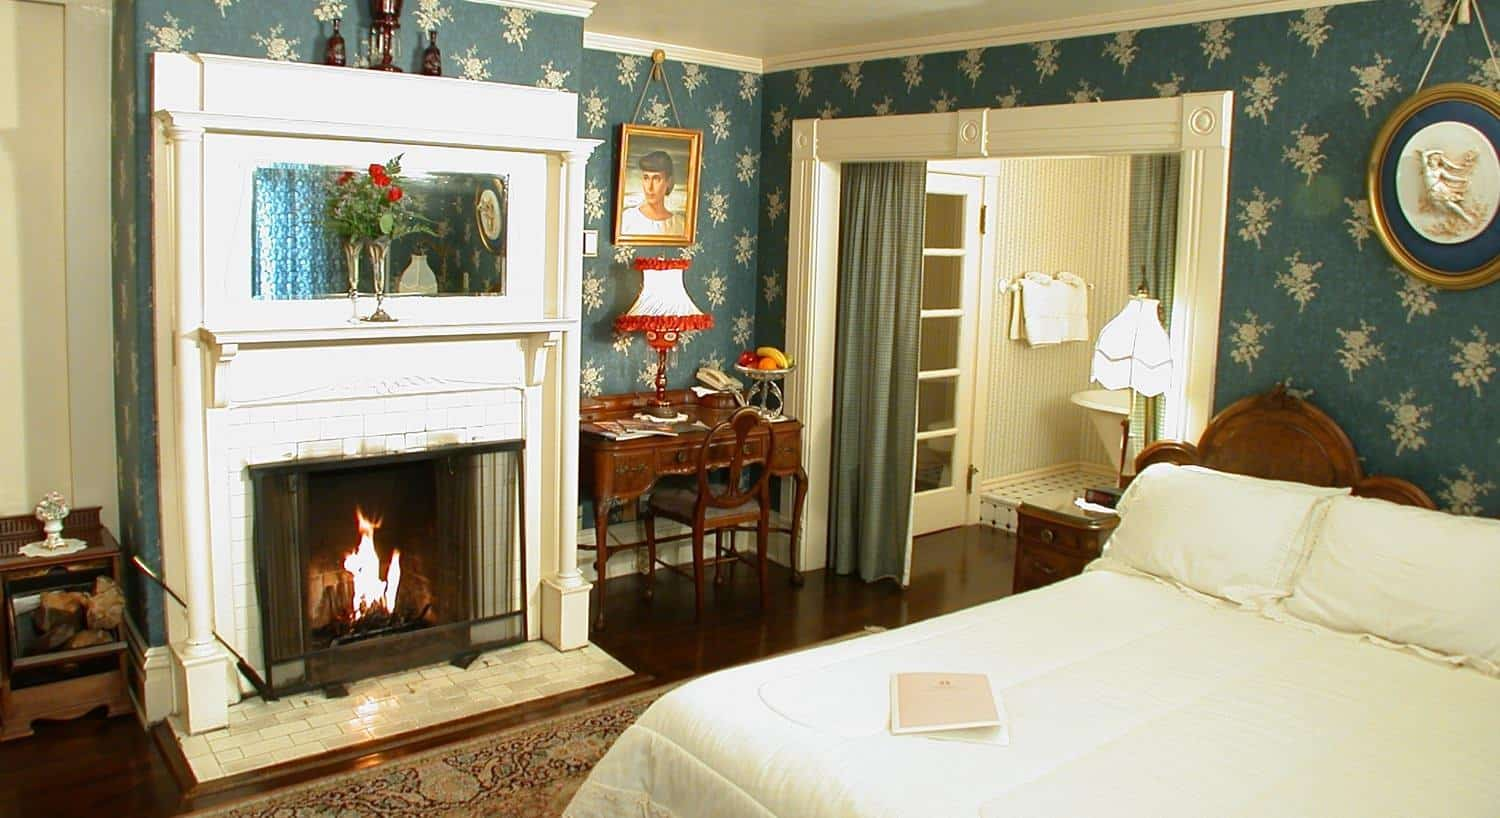 Edith guest room with blue-green papered walls, fireplace with white painted wood surround, and wood bed with white bedding